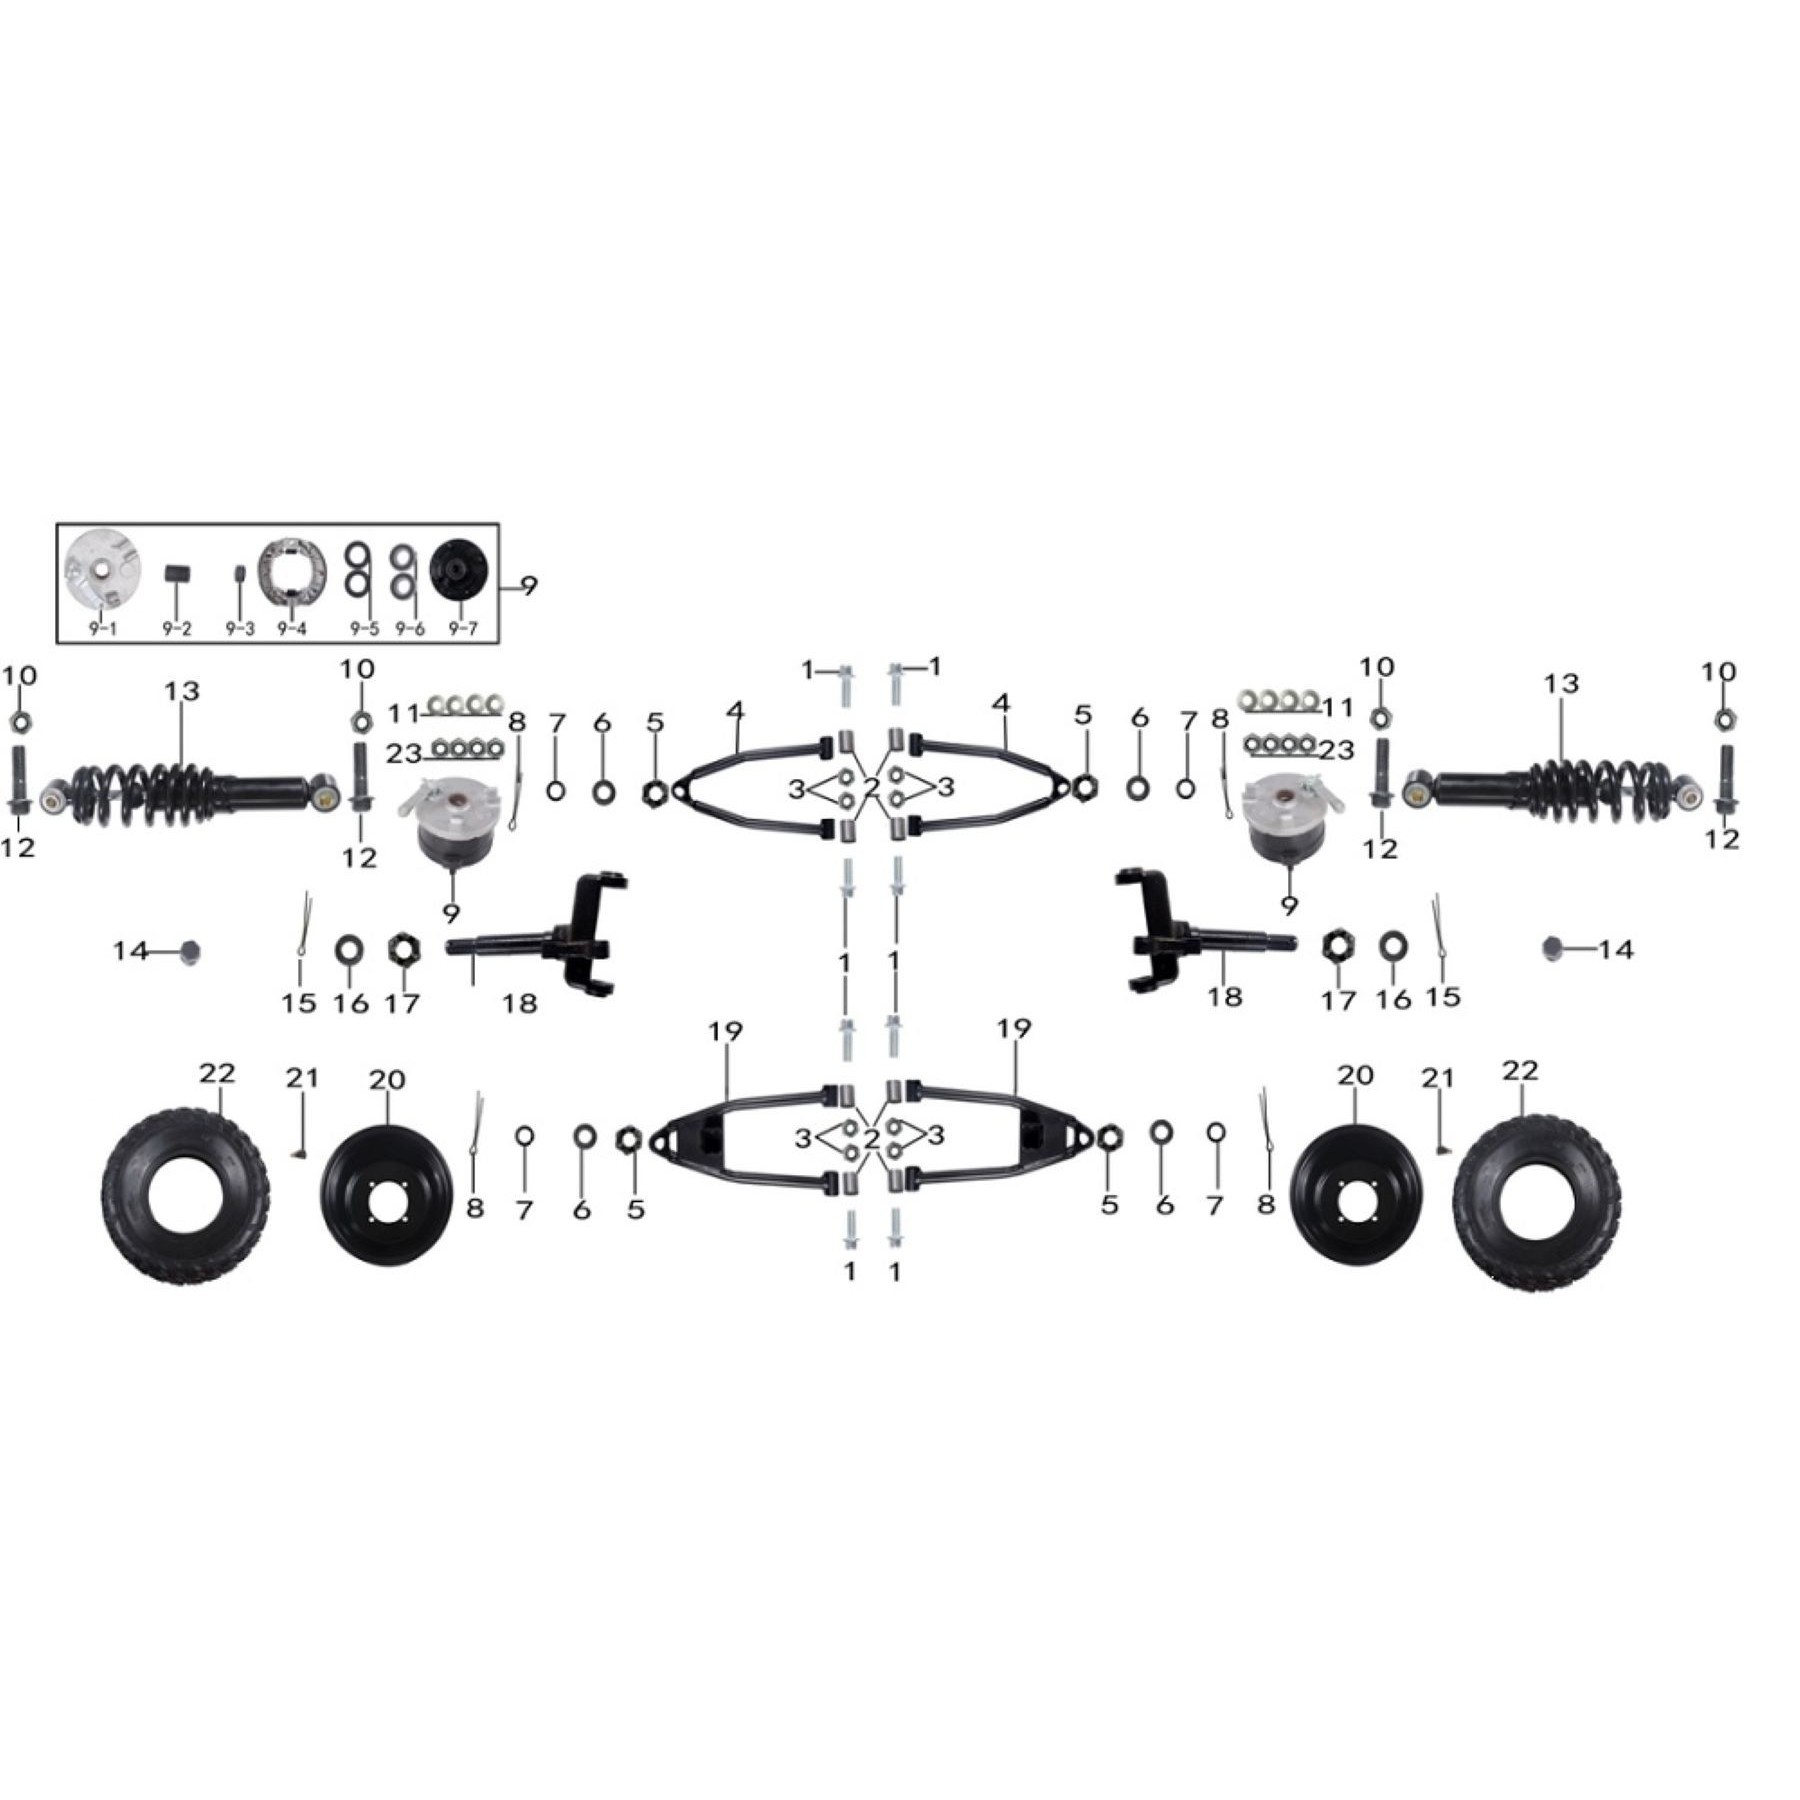 front and suspension parts for atv taotao 150 G -vtt lachute